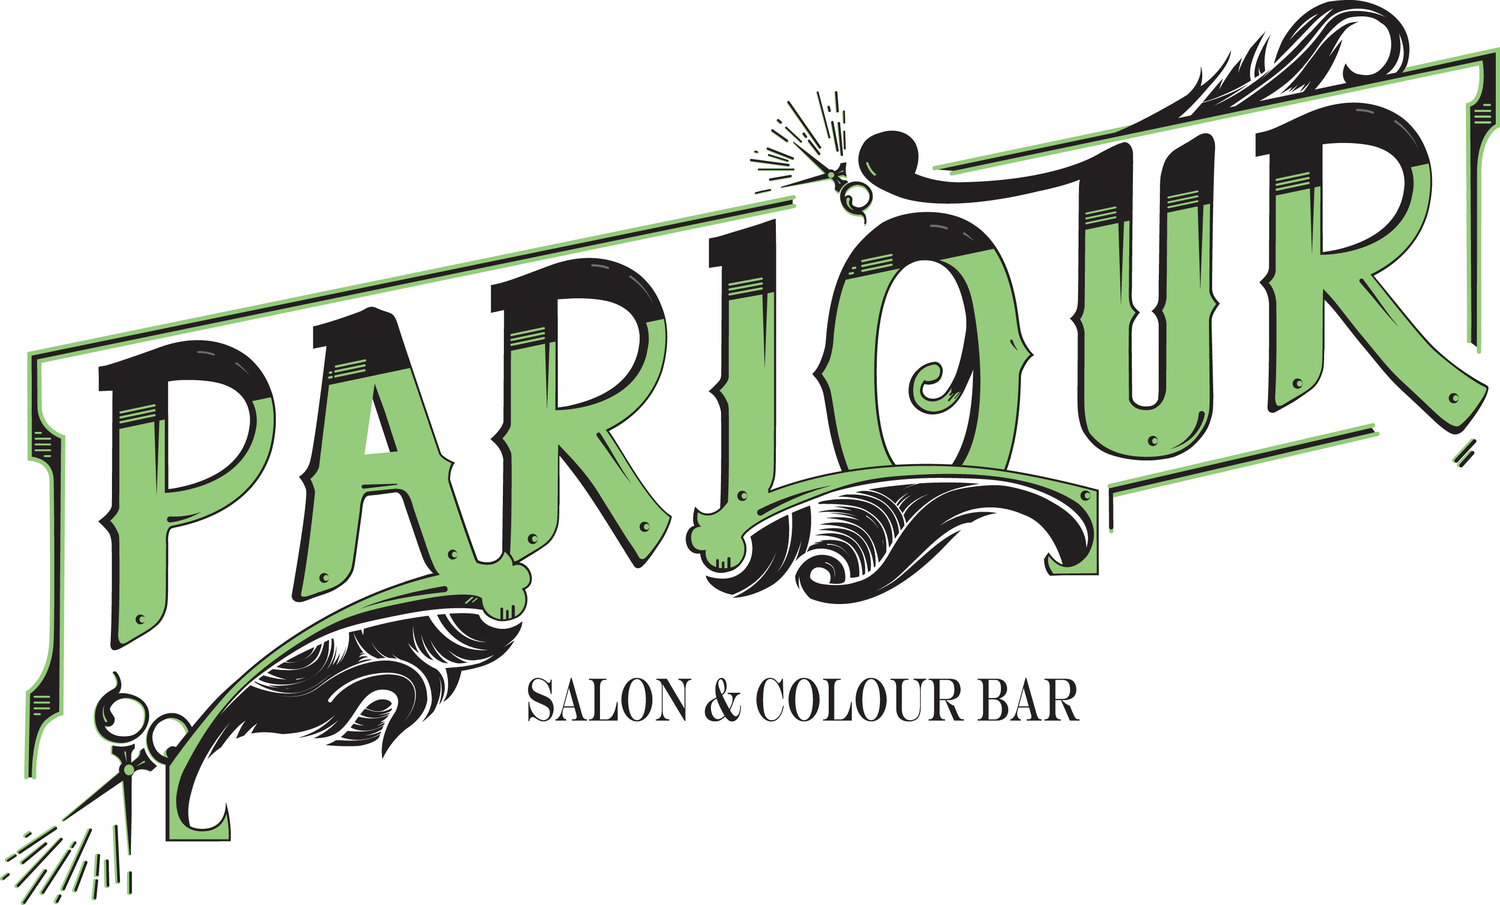 Parlour Salon & Colour Bar